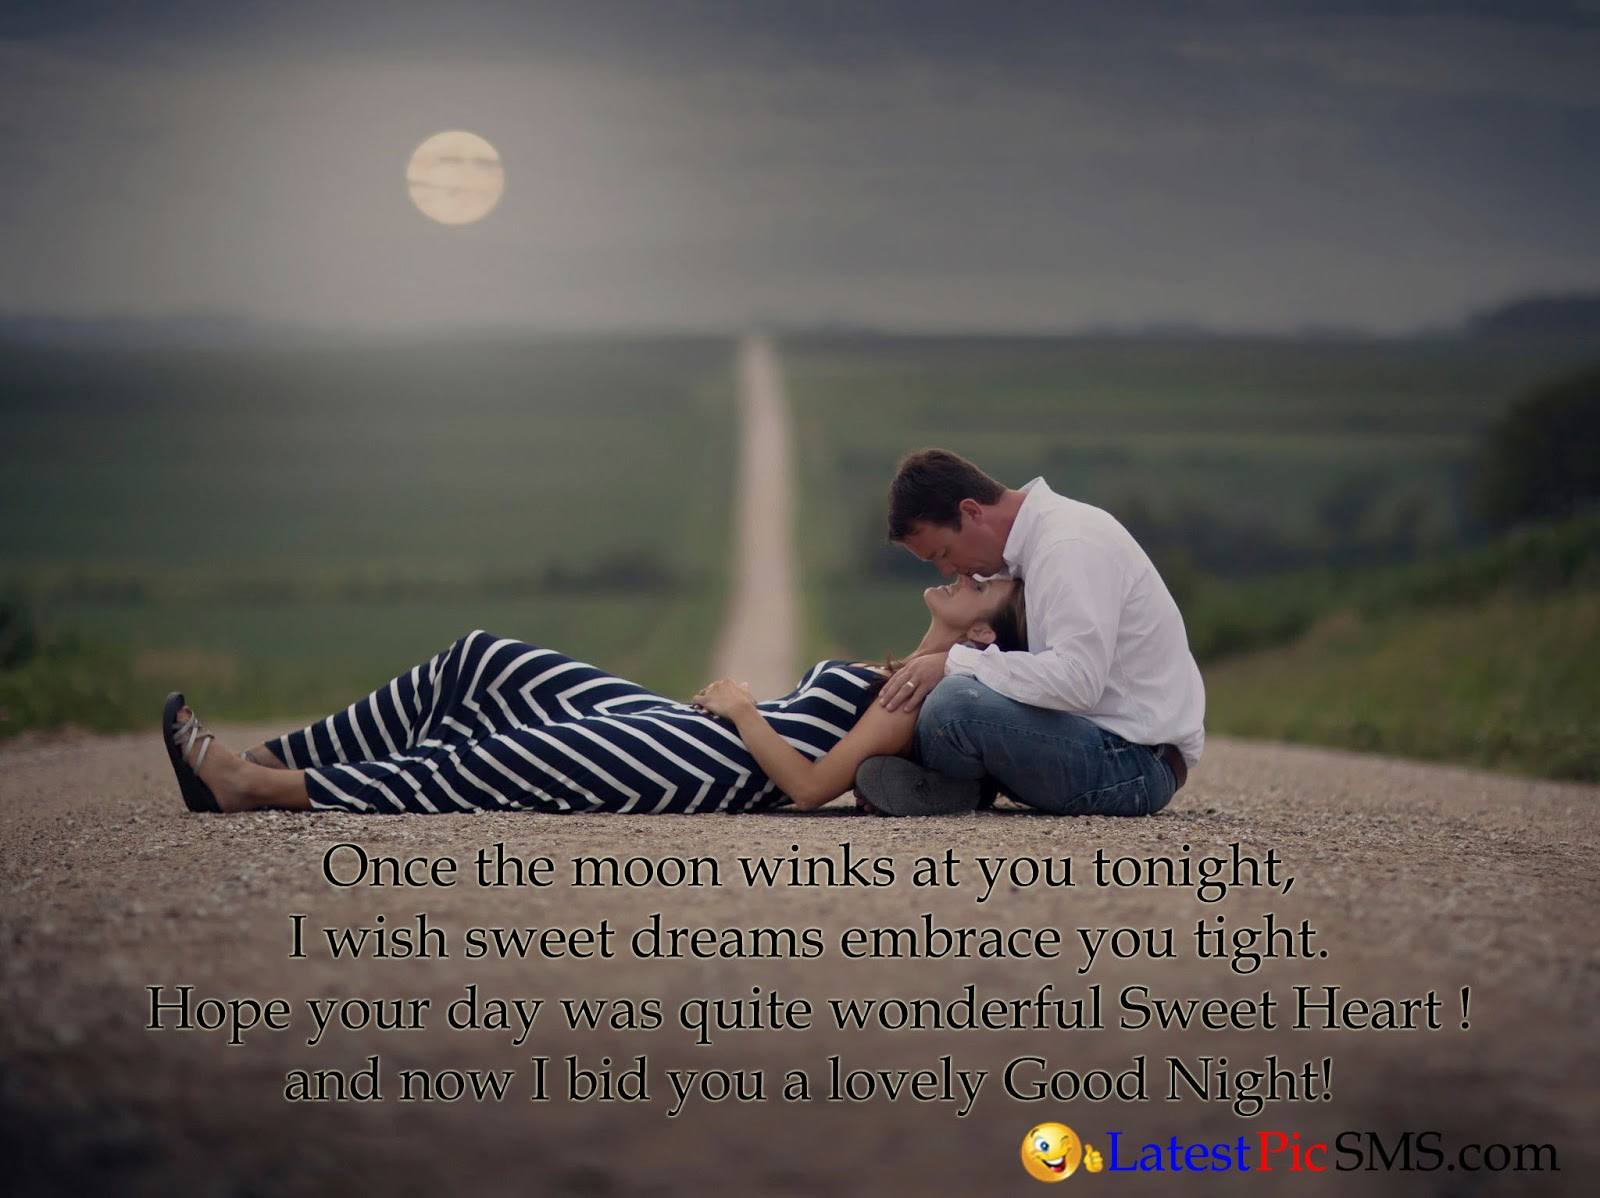 Good night photo new love you kiss sms